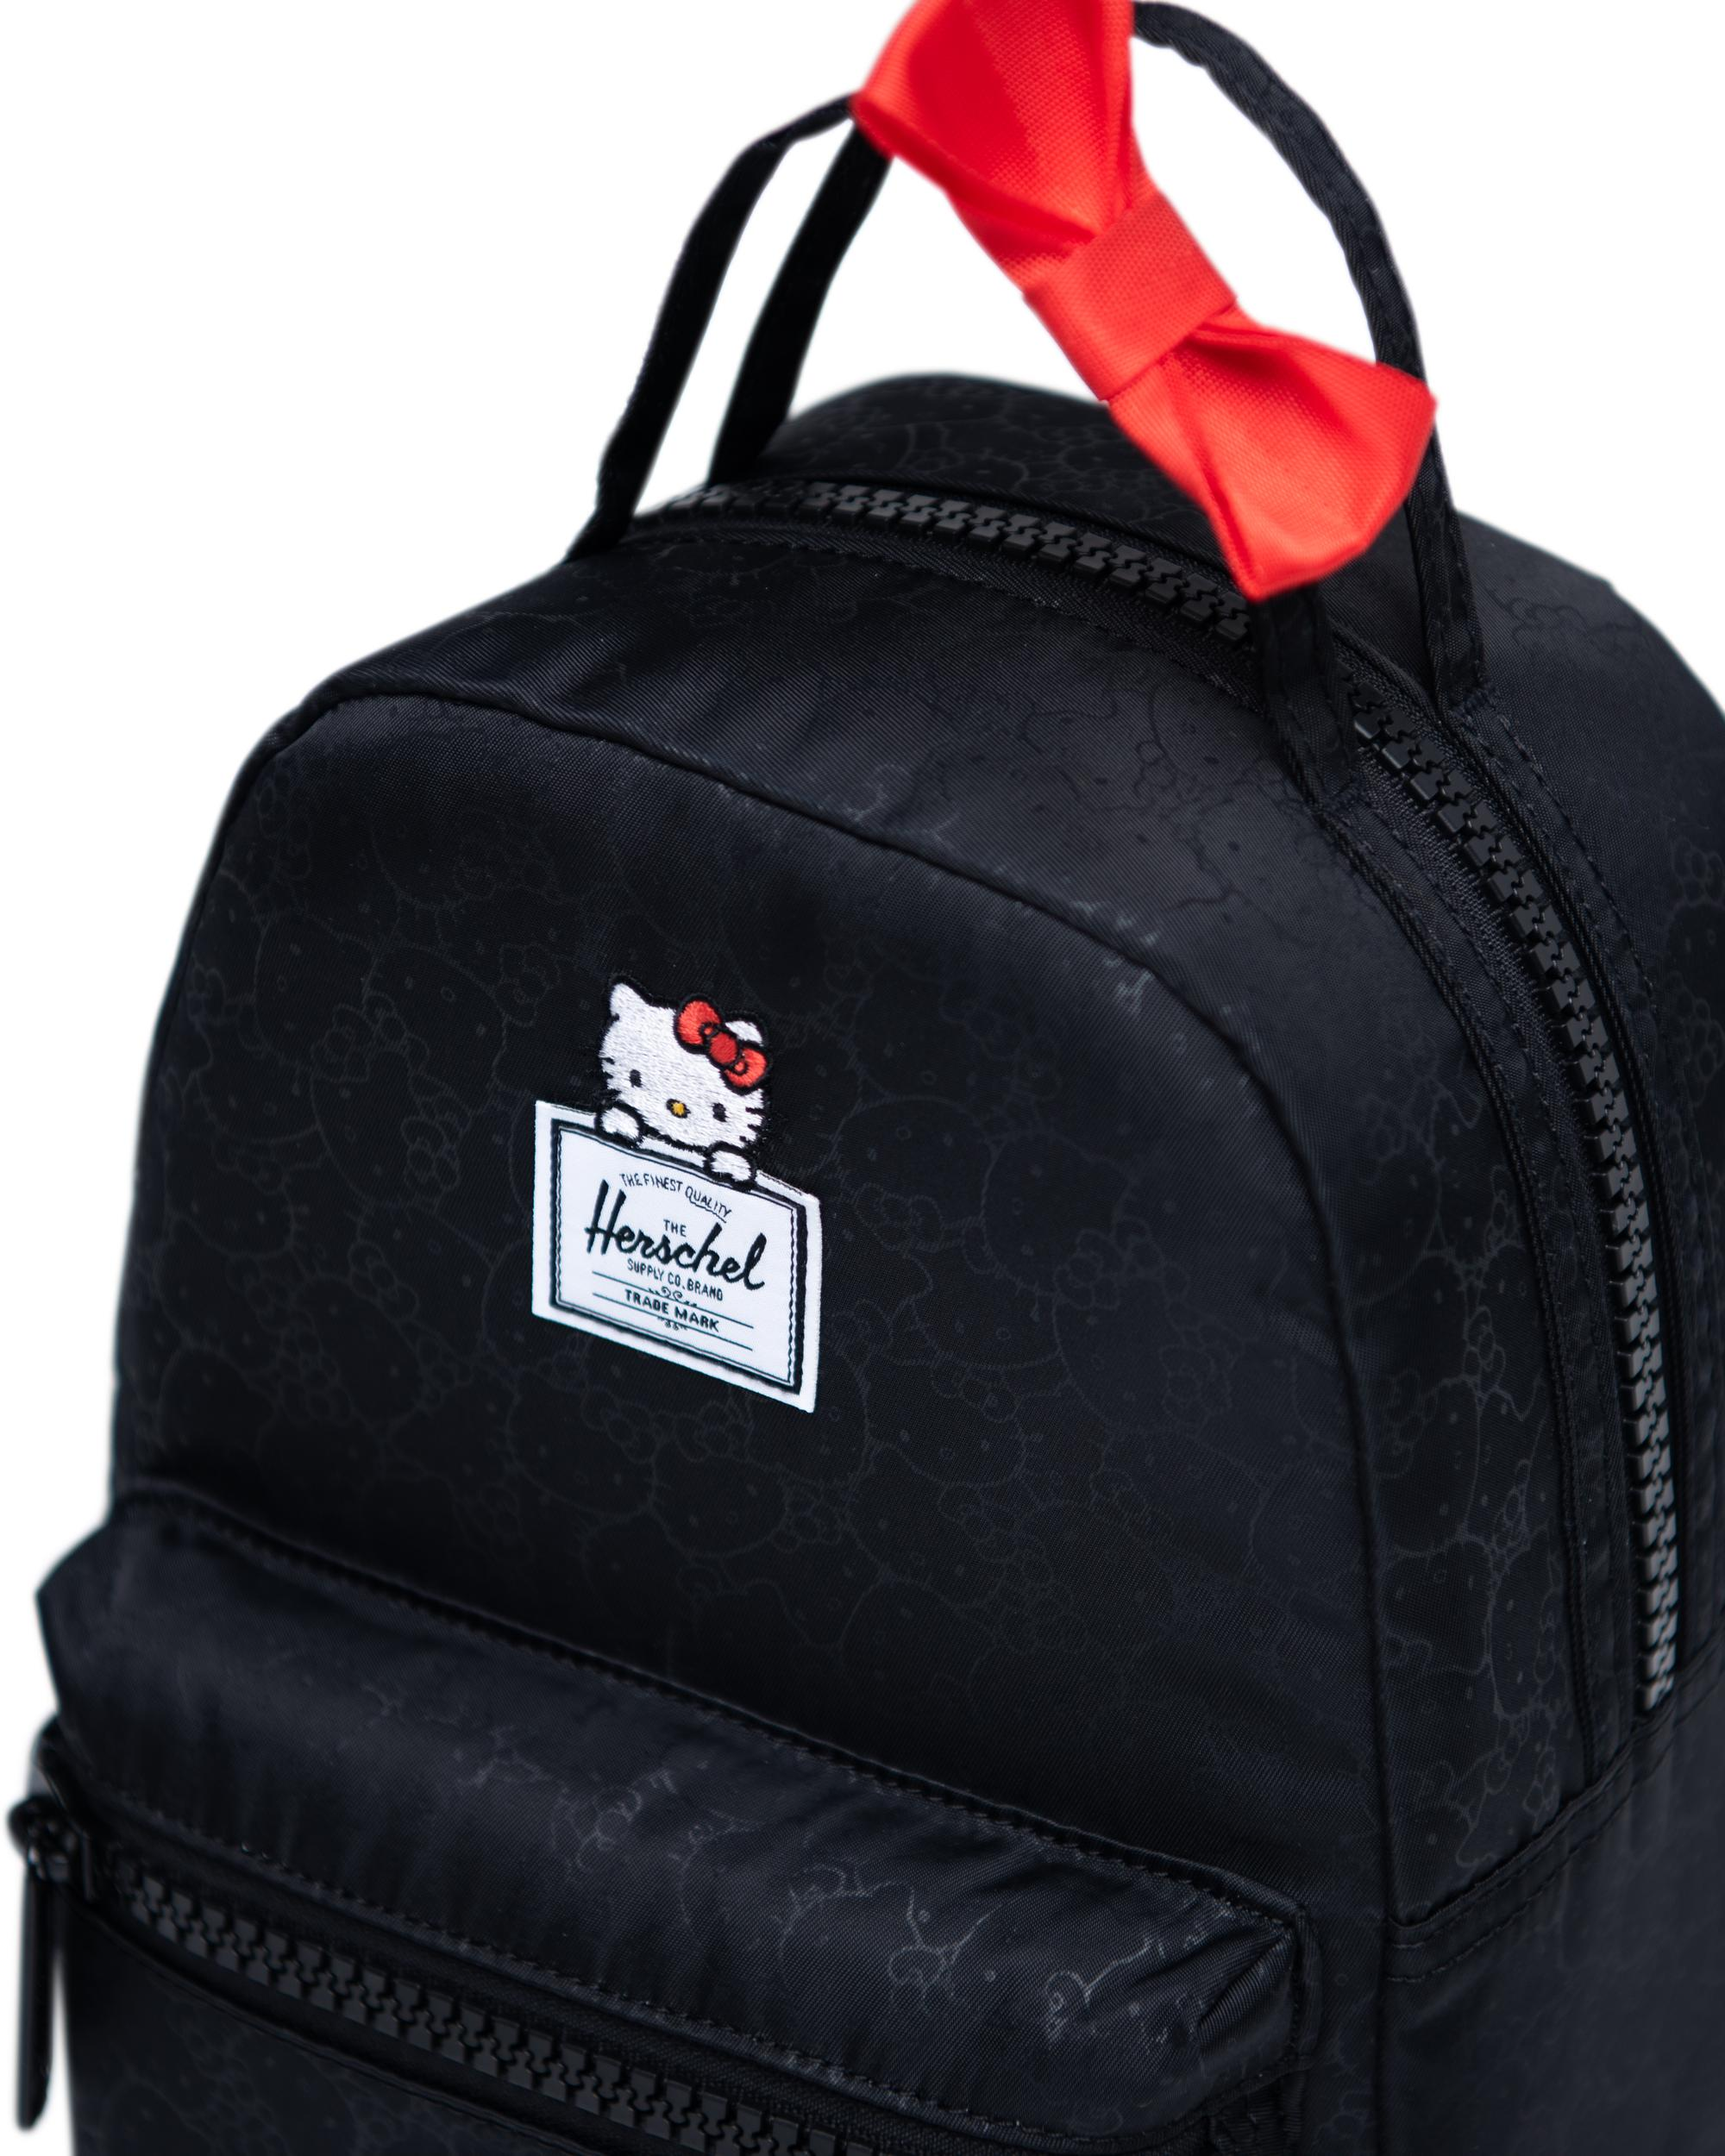 fd7fa2c8495 ... Dual top carrying handles with decorative Hello Kitty bow ...